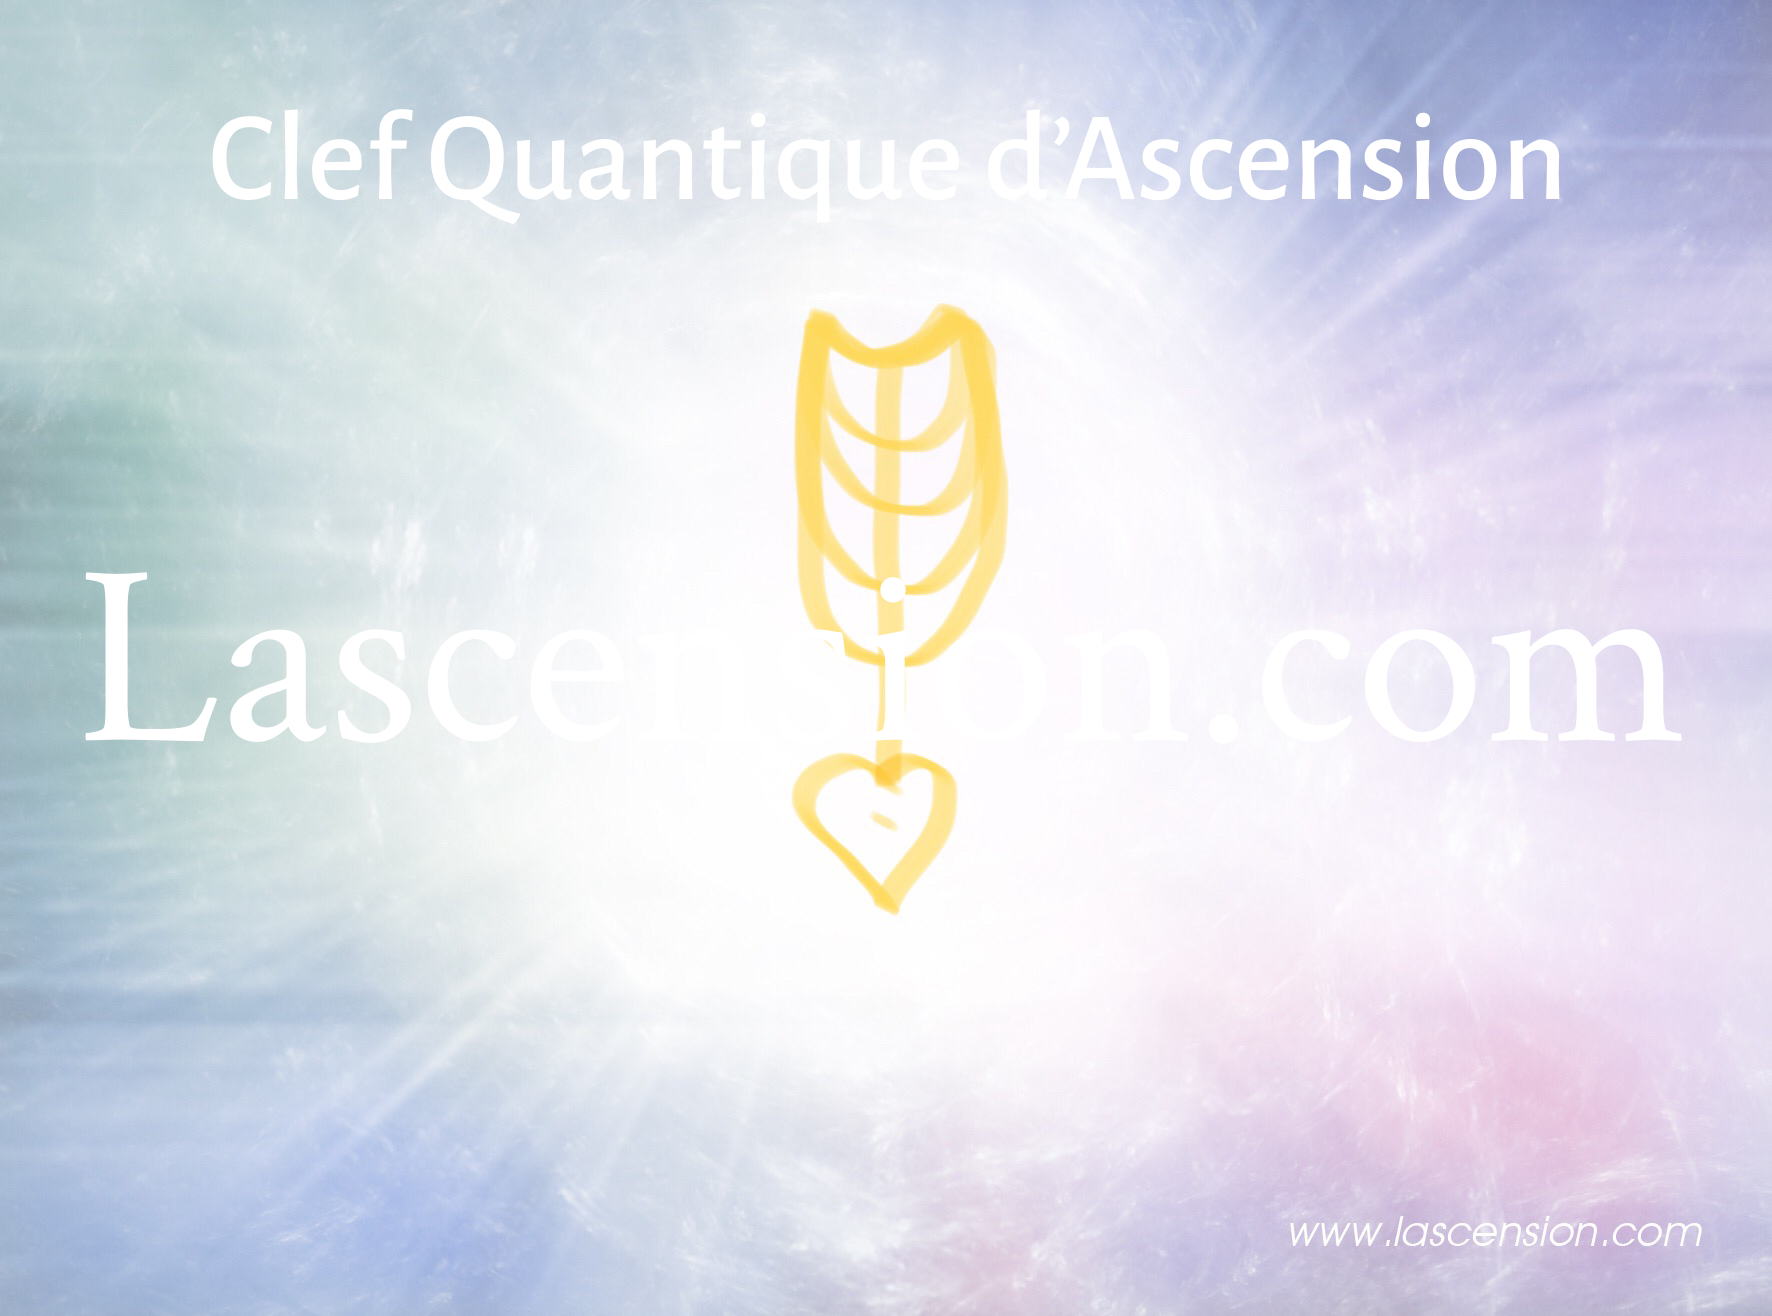 clef quantique ascension virginie lascension.PNG